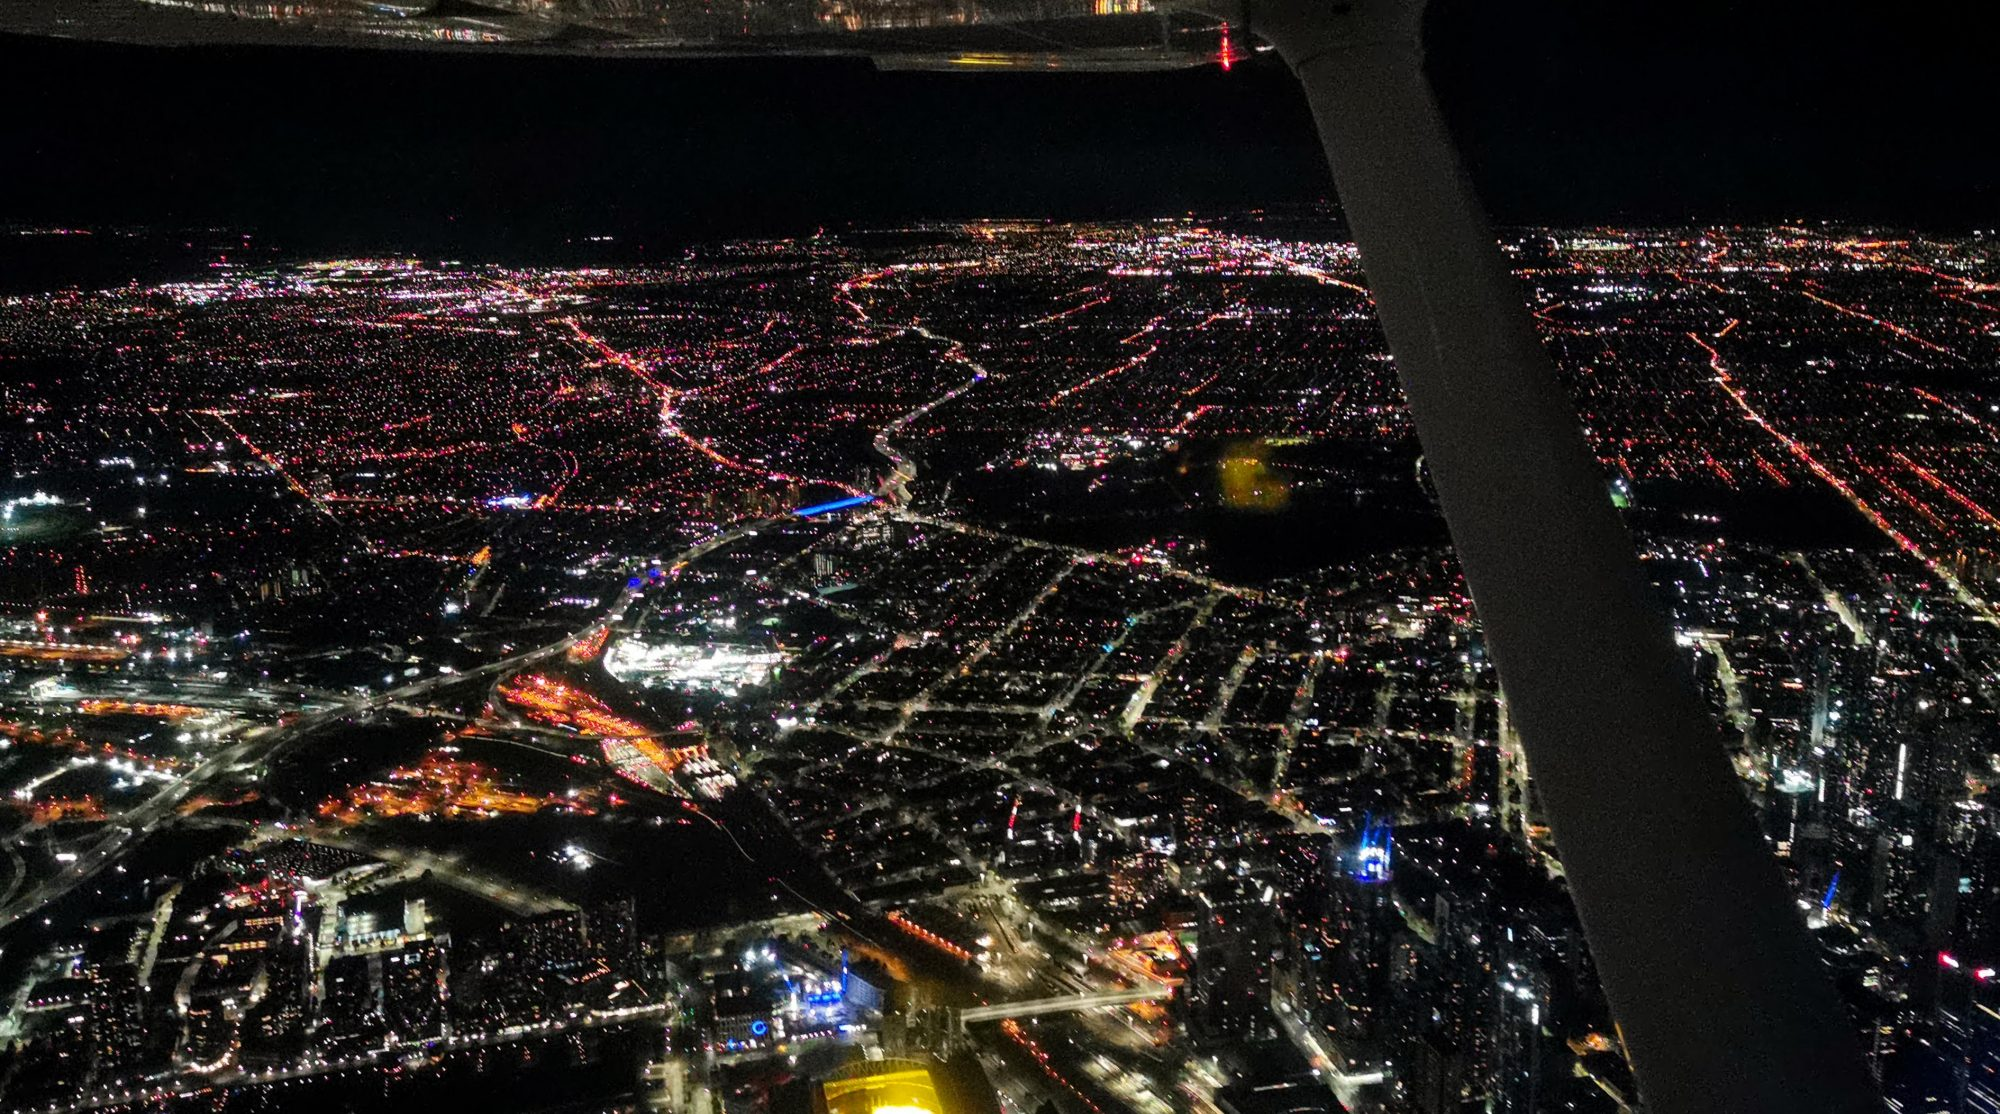 NVFR night flying Melbourne